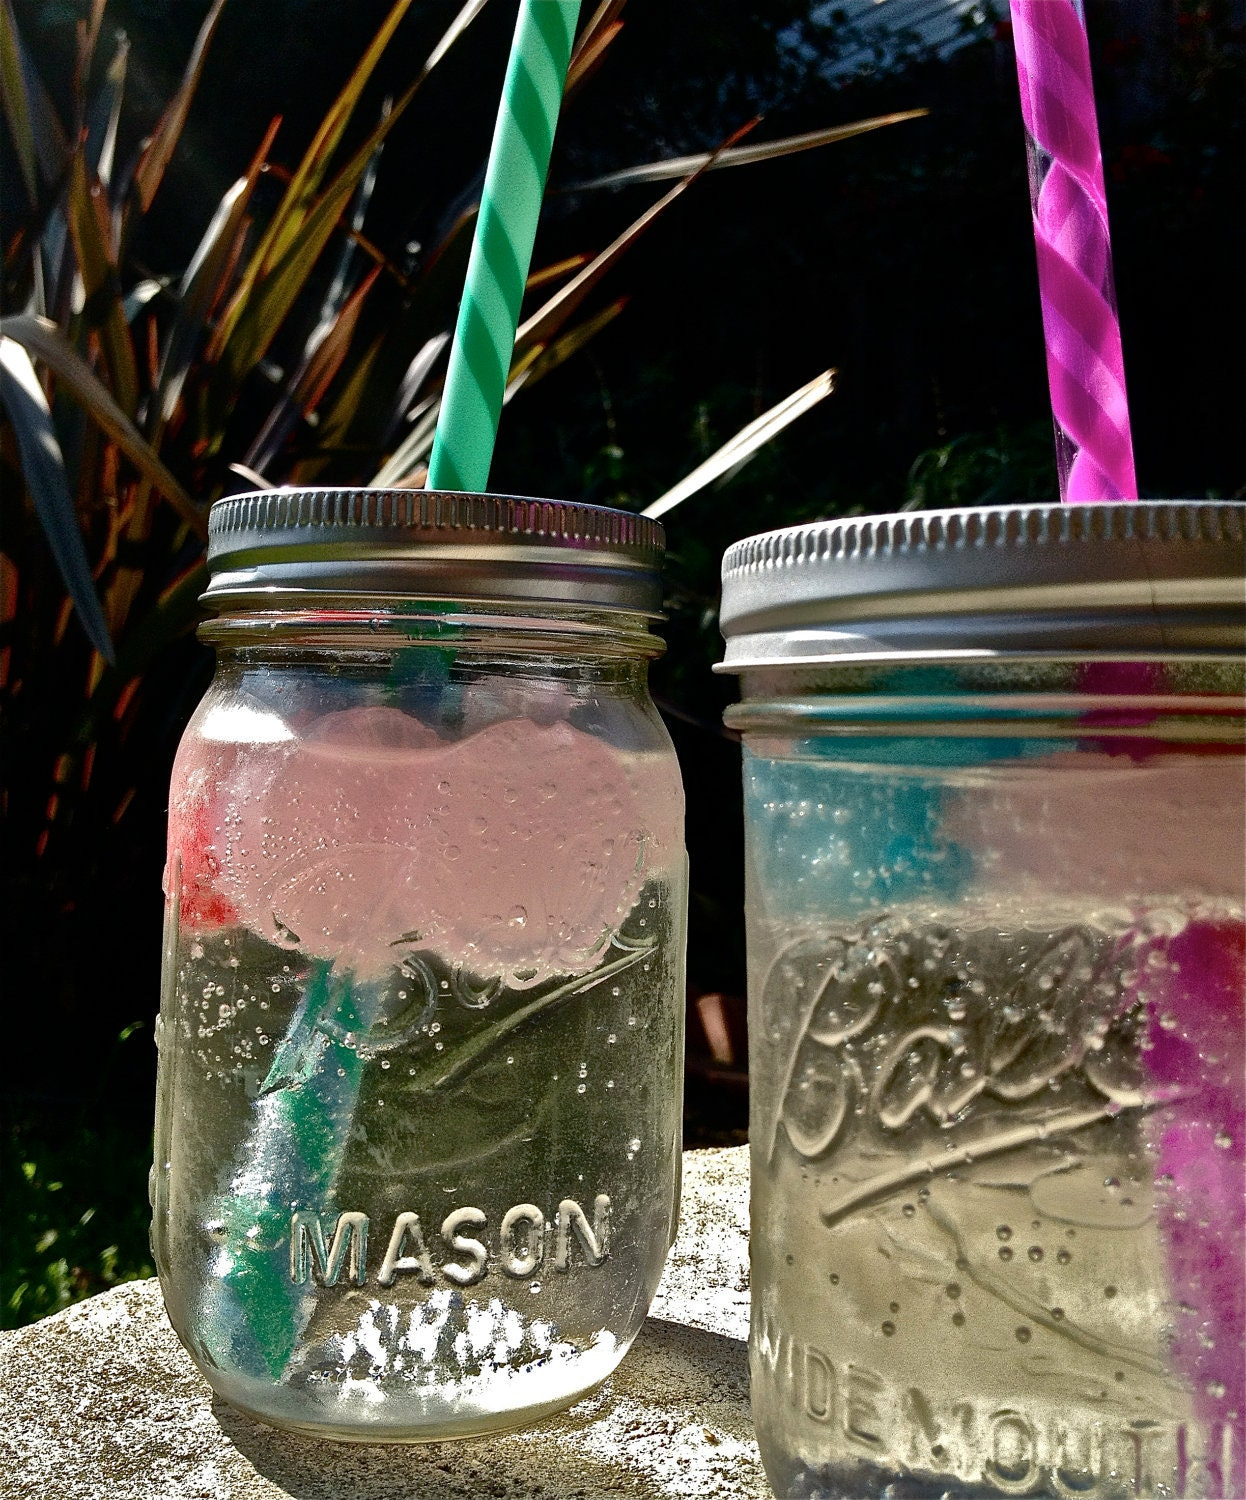 4 Mason Jar Tumbler Lids with Straws - Make your own eco Tumbler - Reusable Glass Tumbler - Mason Jar Lids - Mason Tumbler